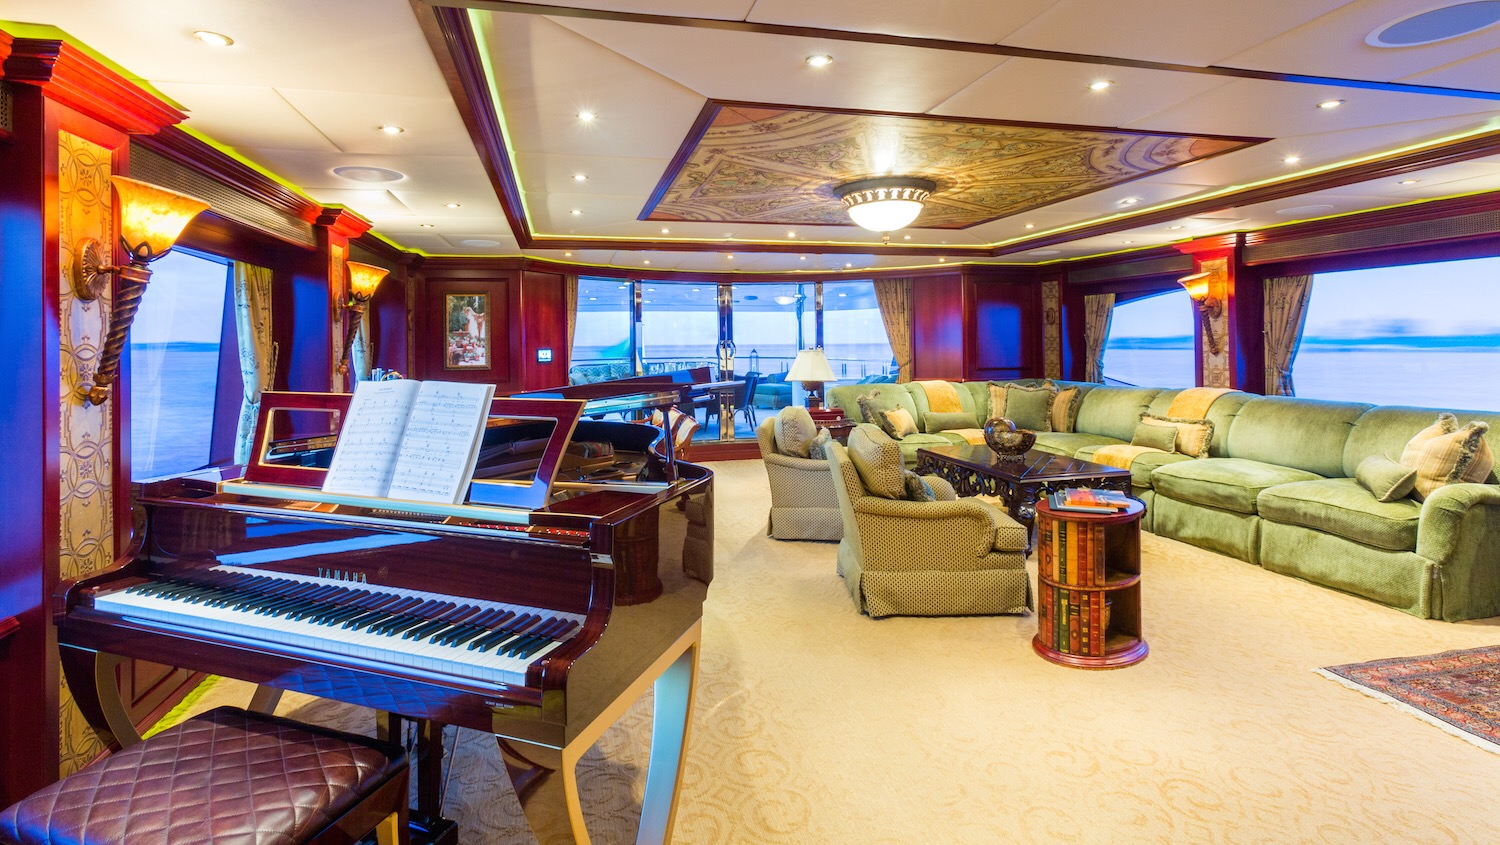 Grand piano in a formal living room setting on a yacht.